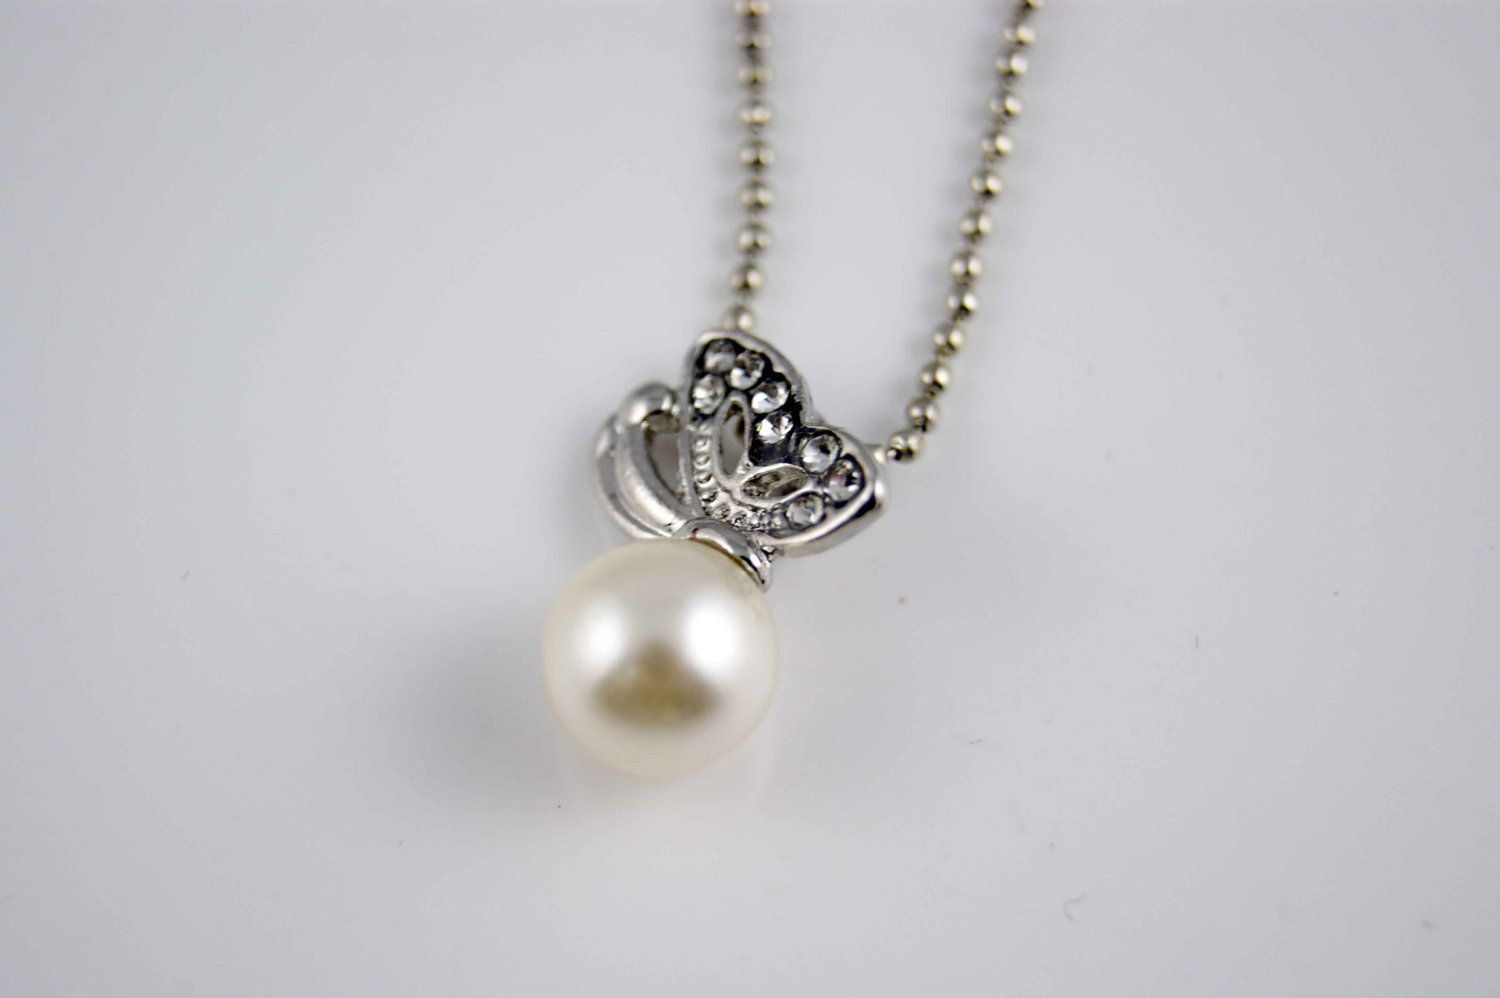 Artificial pearl necklace swarovski crystal butterfly wings necklace